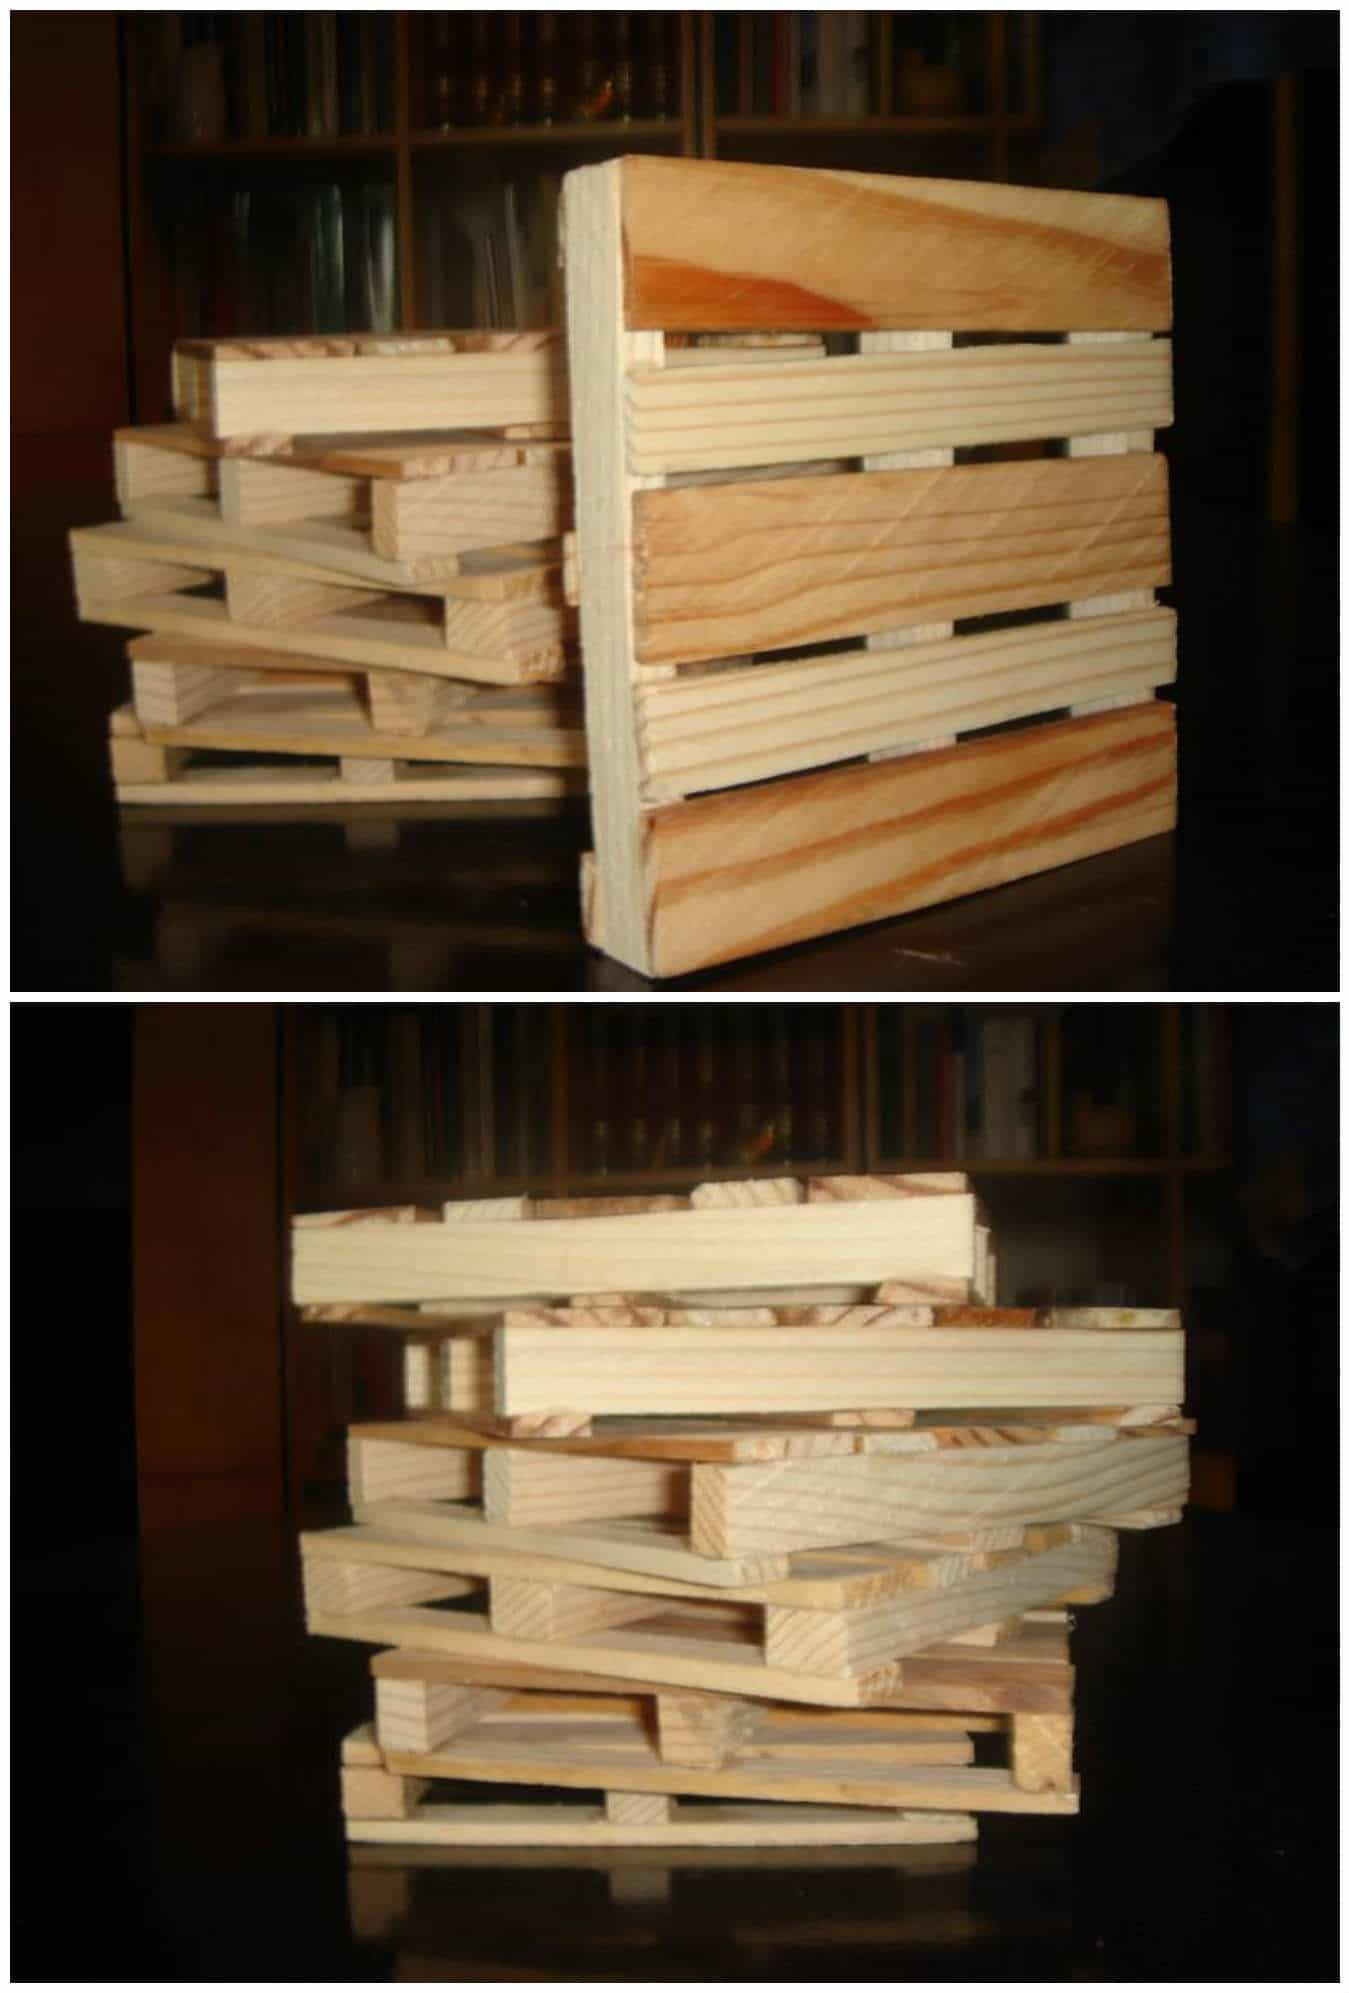 frames for living room walls second ideas coasters from recycled pallet wood • 1001 pallets